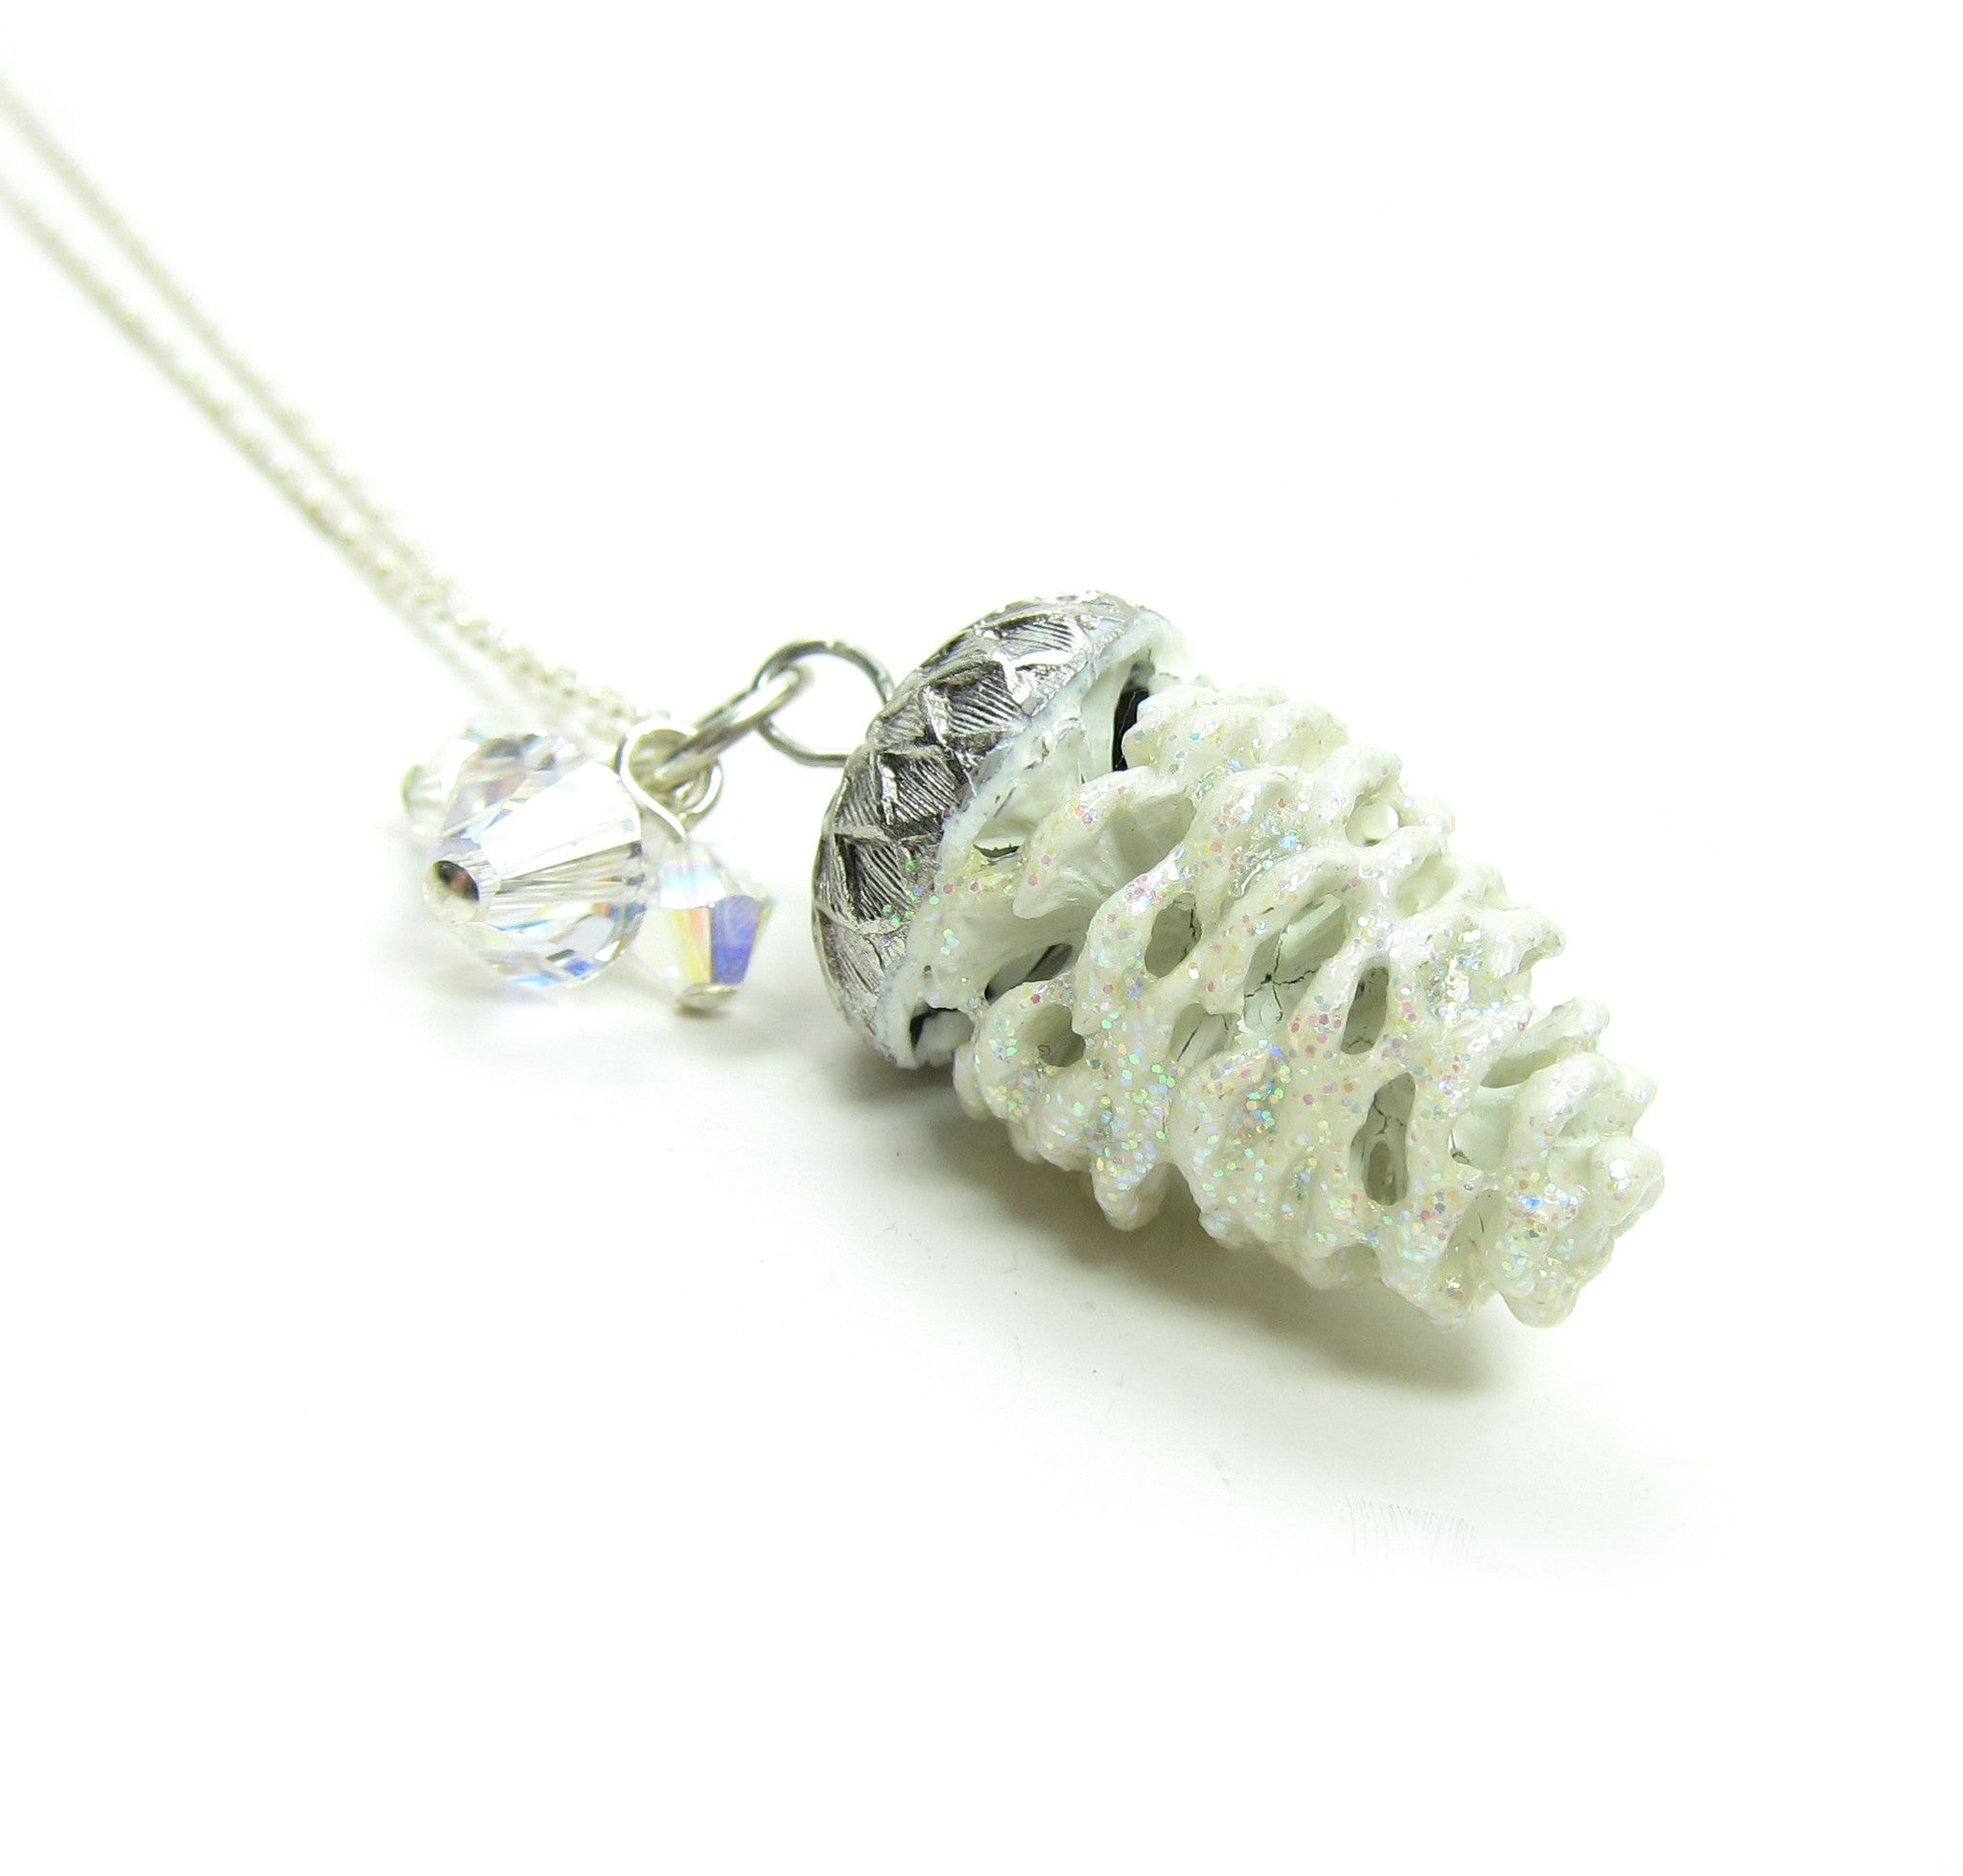 White pine cone necklace with Swarovski crystals